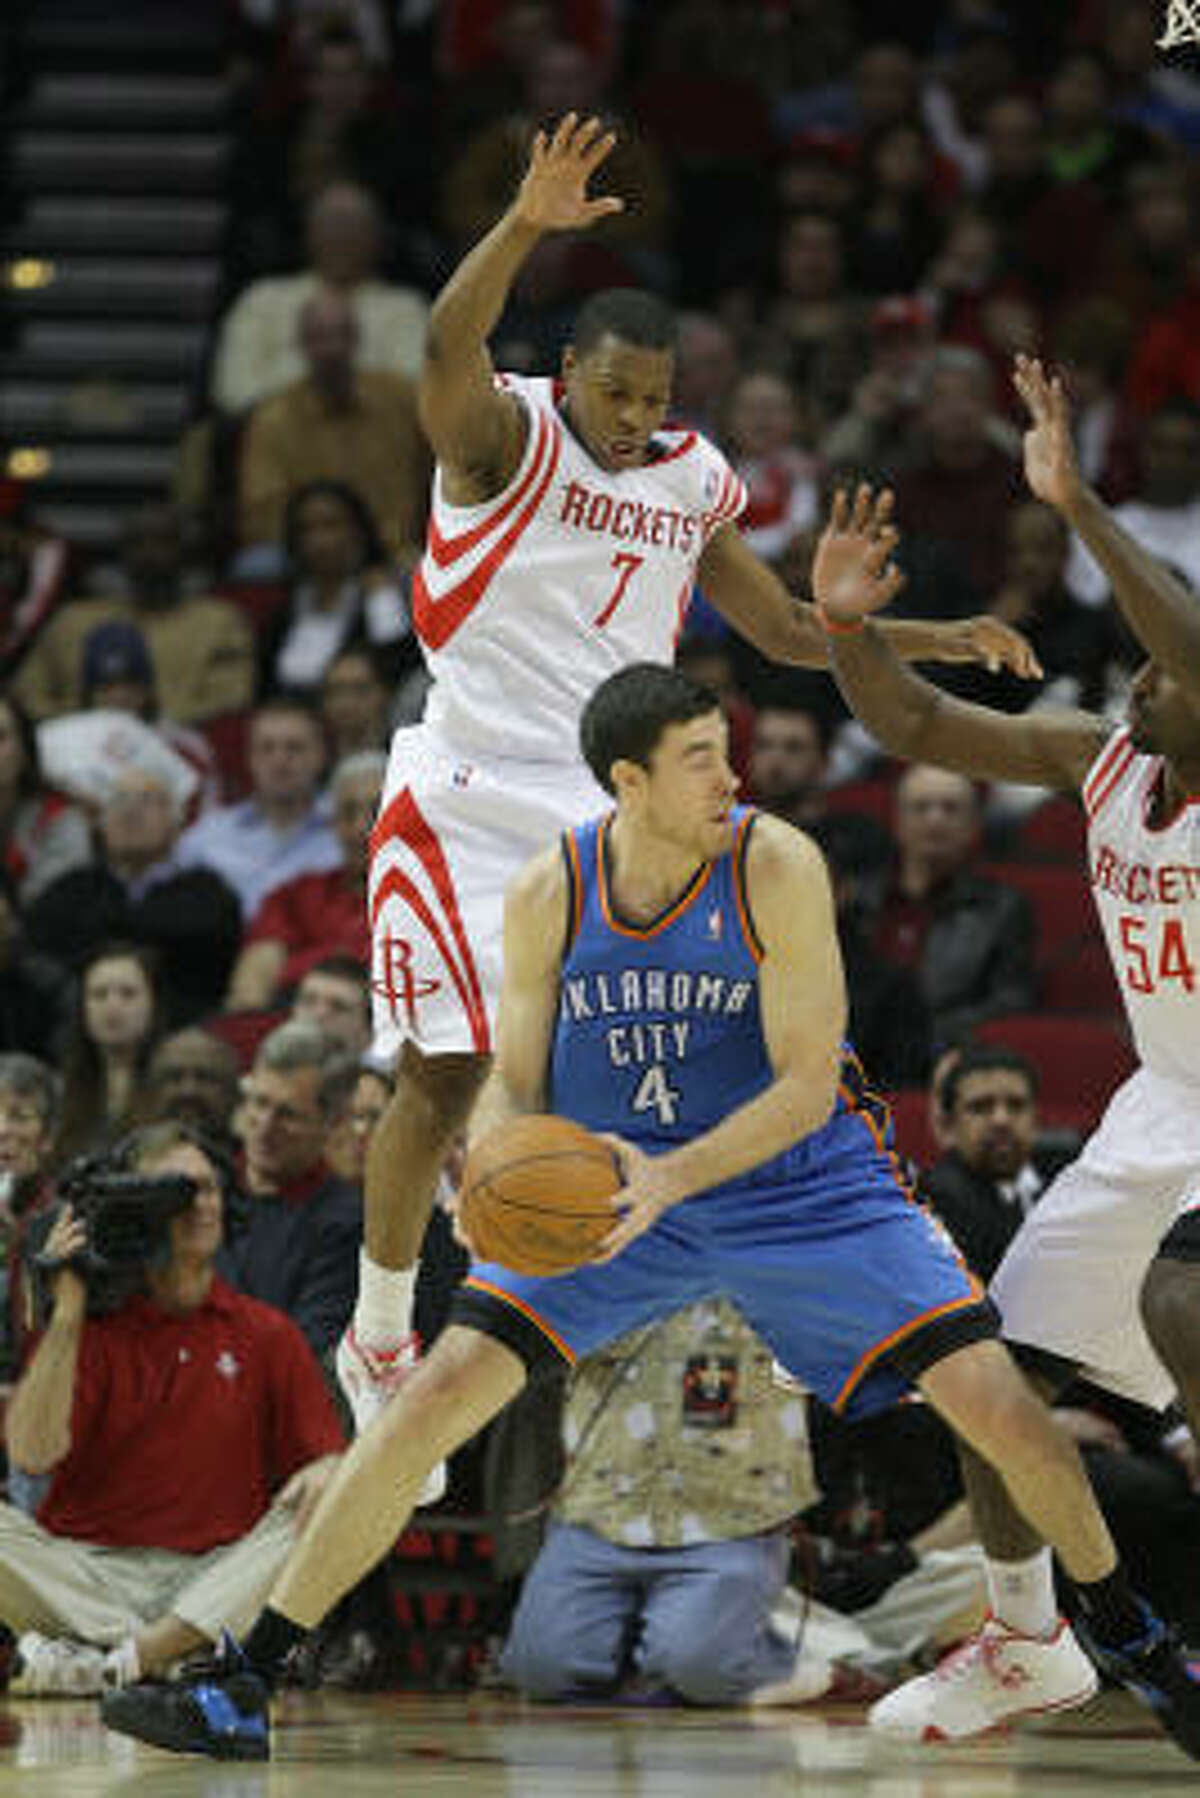 Rockets guard Kyle Lowry (7) and forward Patrick Patterson (54) try to keep Thunder forward Nick Collison from making a pass.